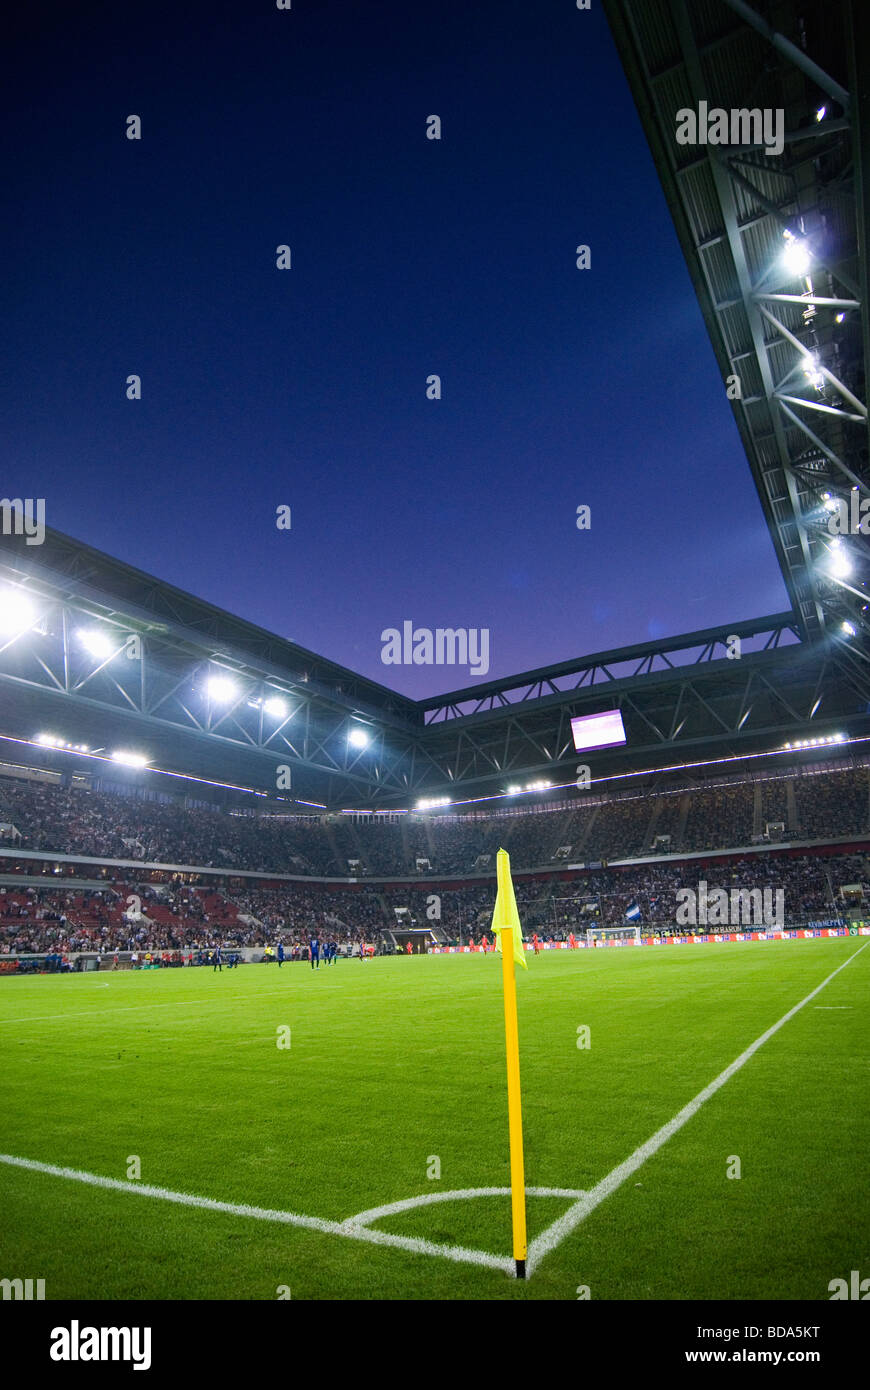 The ESPRIT Arena in Duesseldorf, Germany during a soccer match. Stock Photo